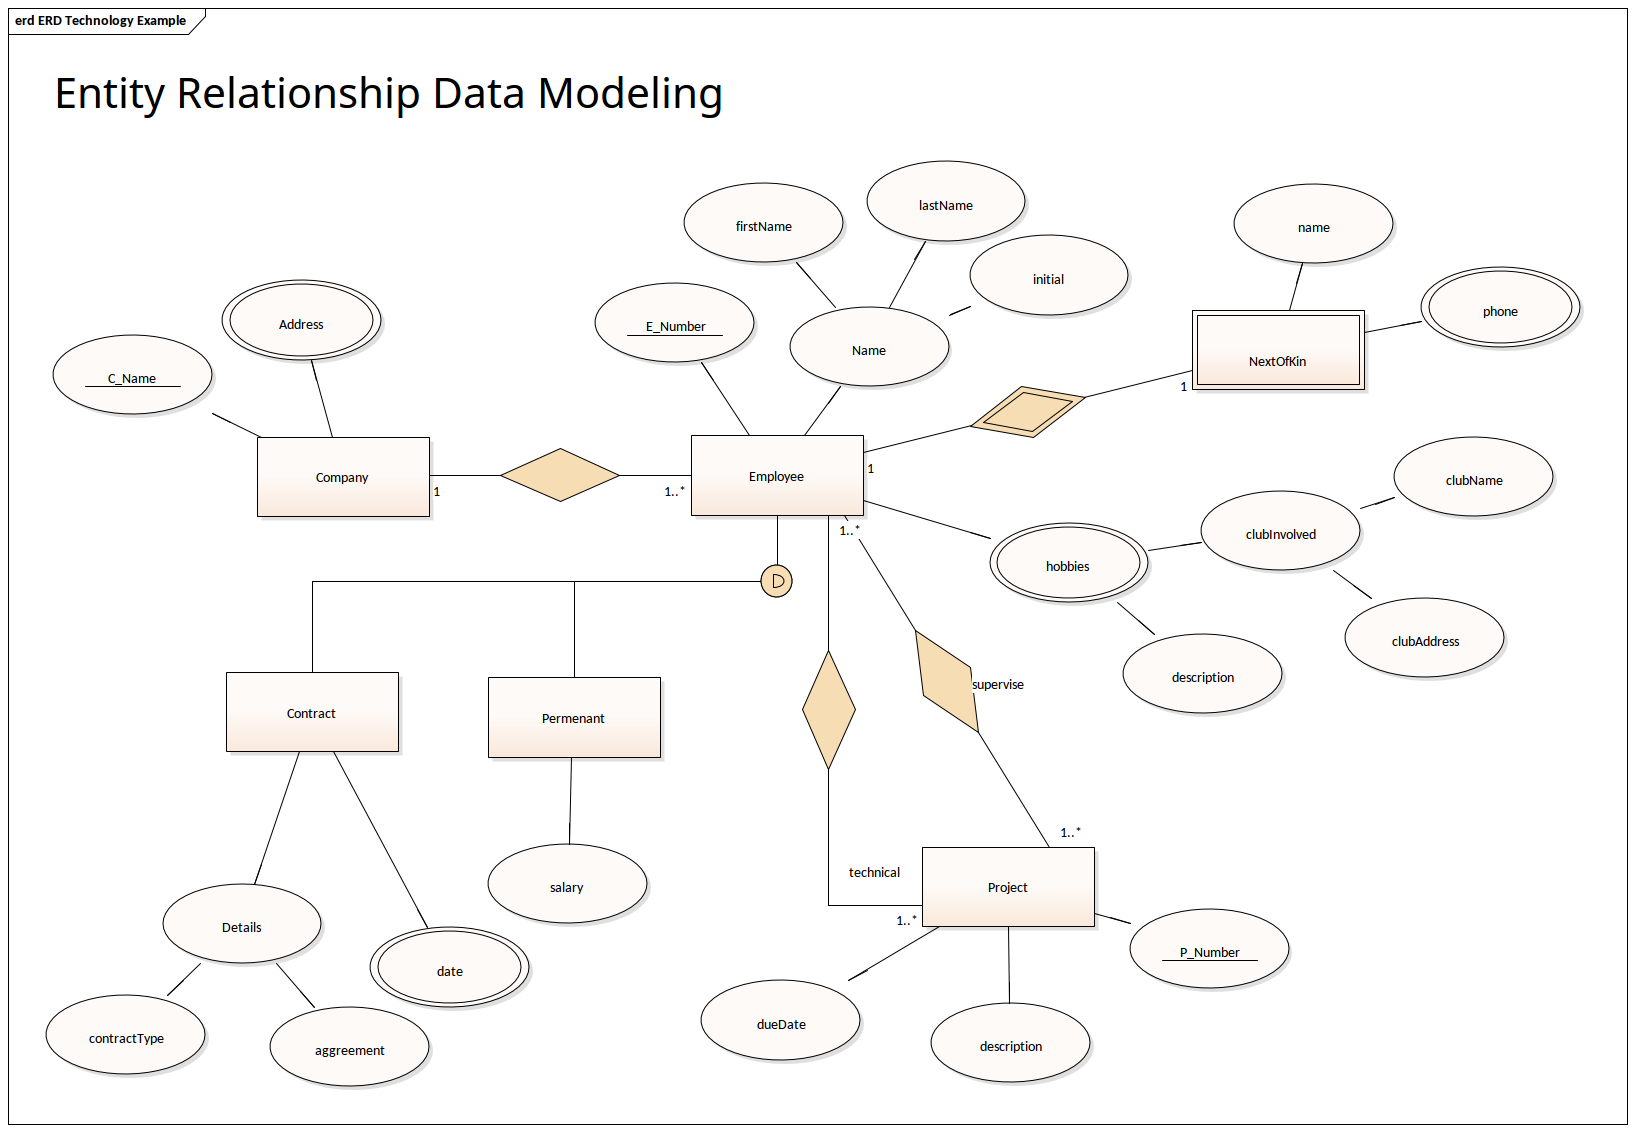 Entity Relationship Data Modeling | Enterprise Architect with regard to Er Diagram Connectors